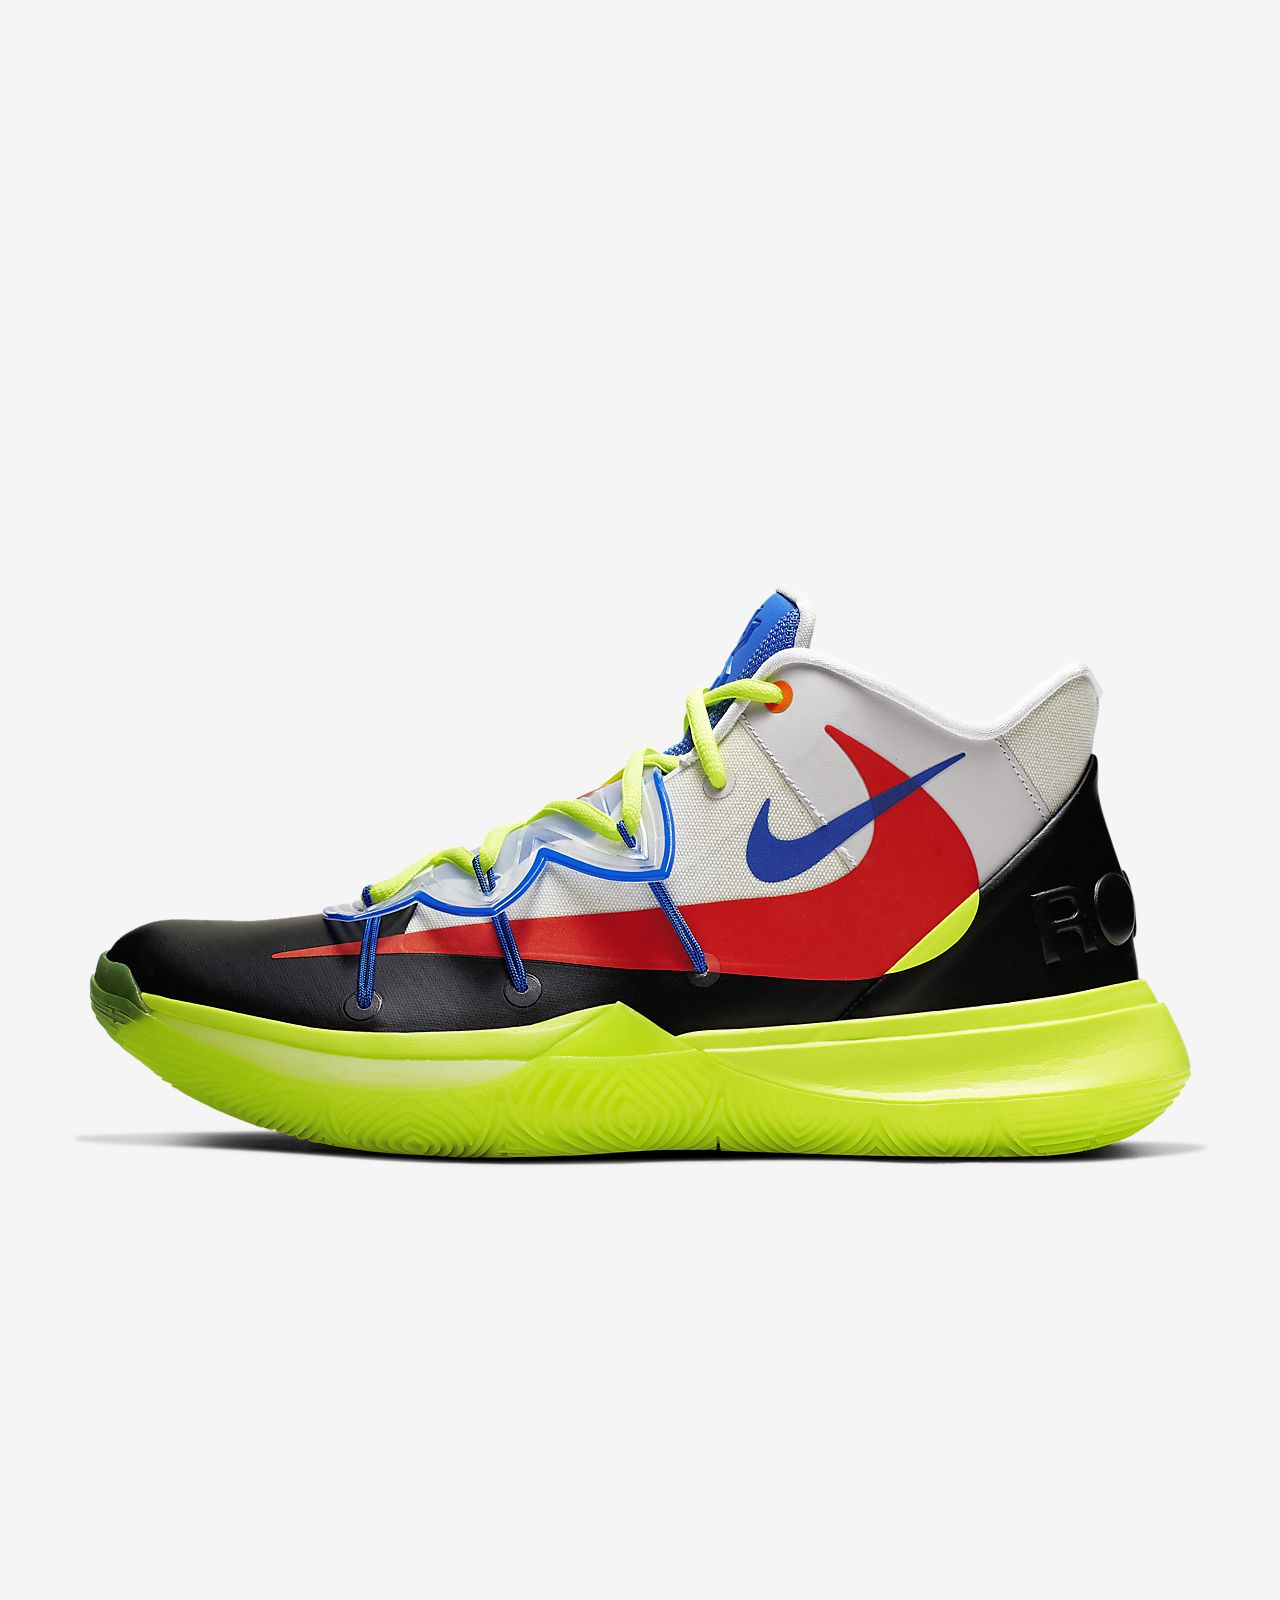 Kyrie 5 x ROKIT All Star Basketball Shoe